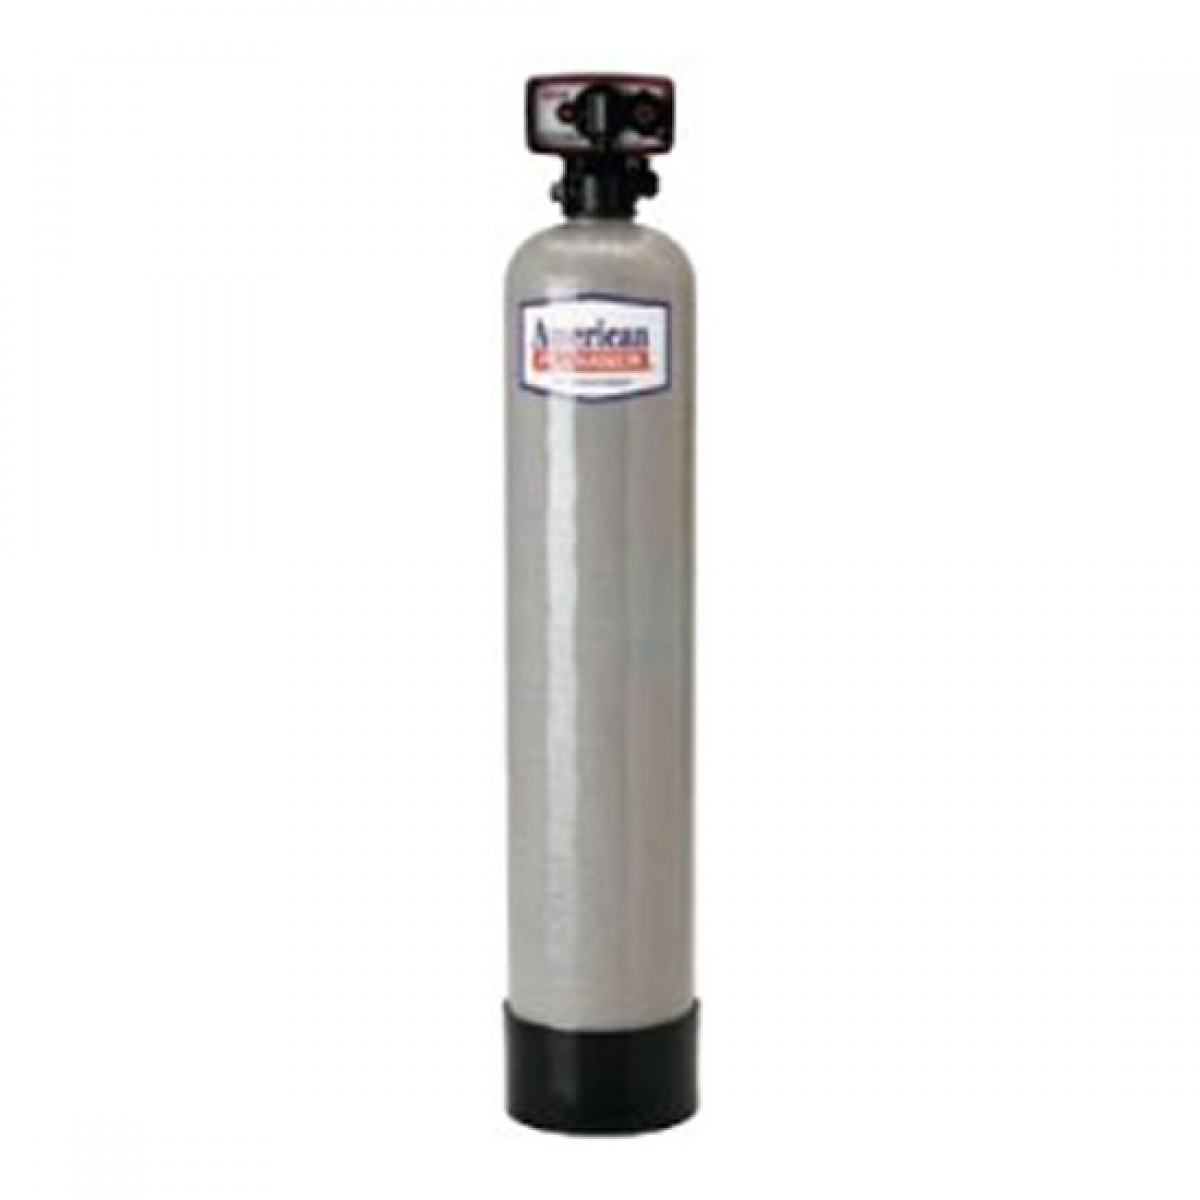 American Plumber 4002124 Whole House Sediment Water Filter